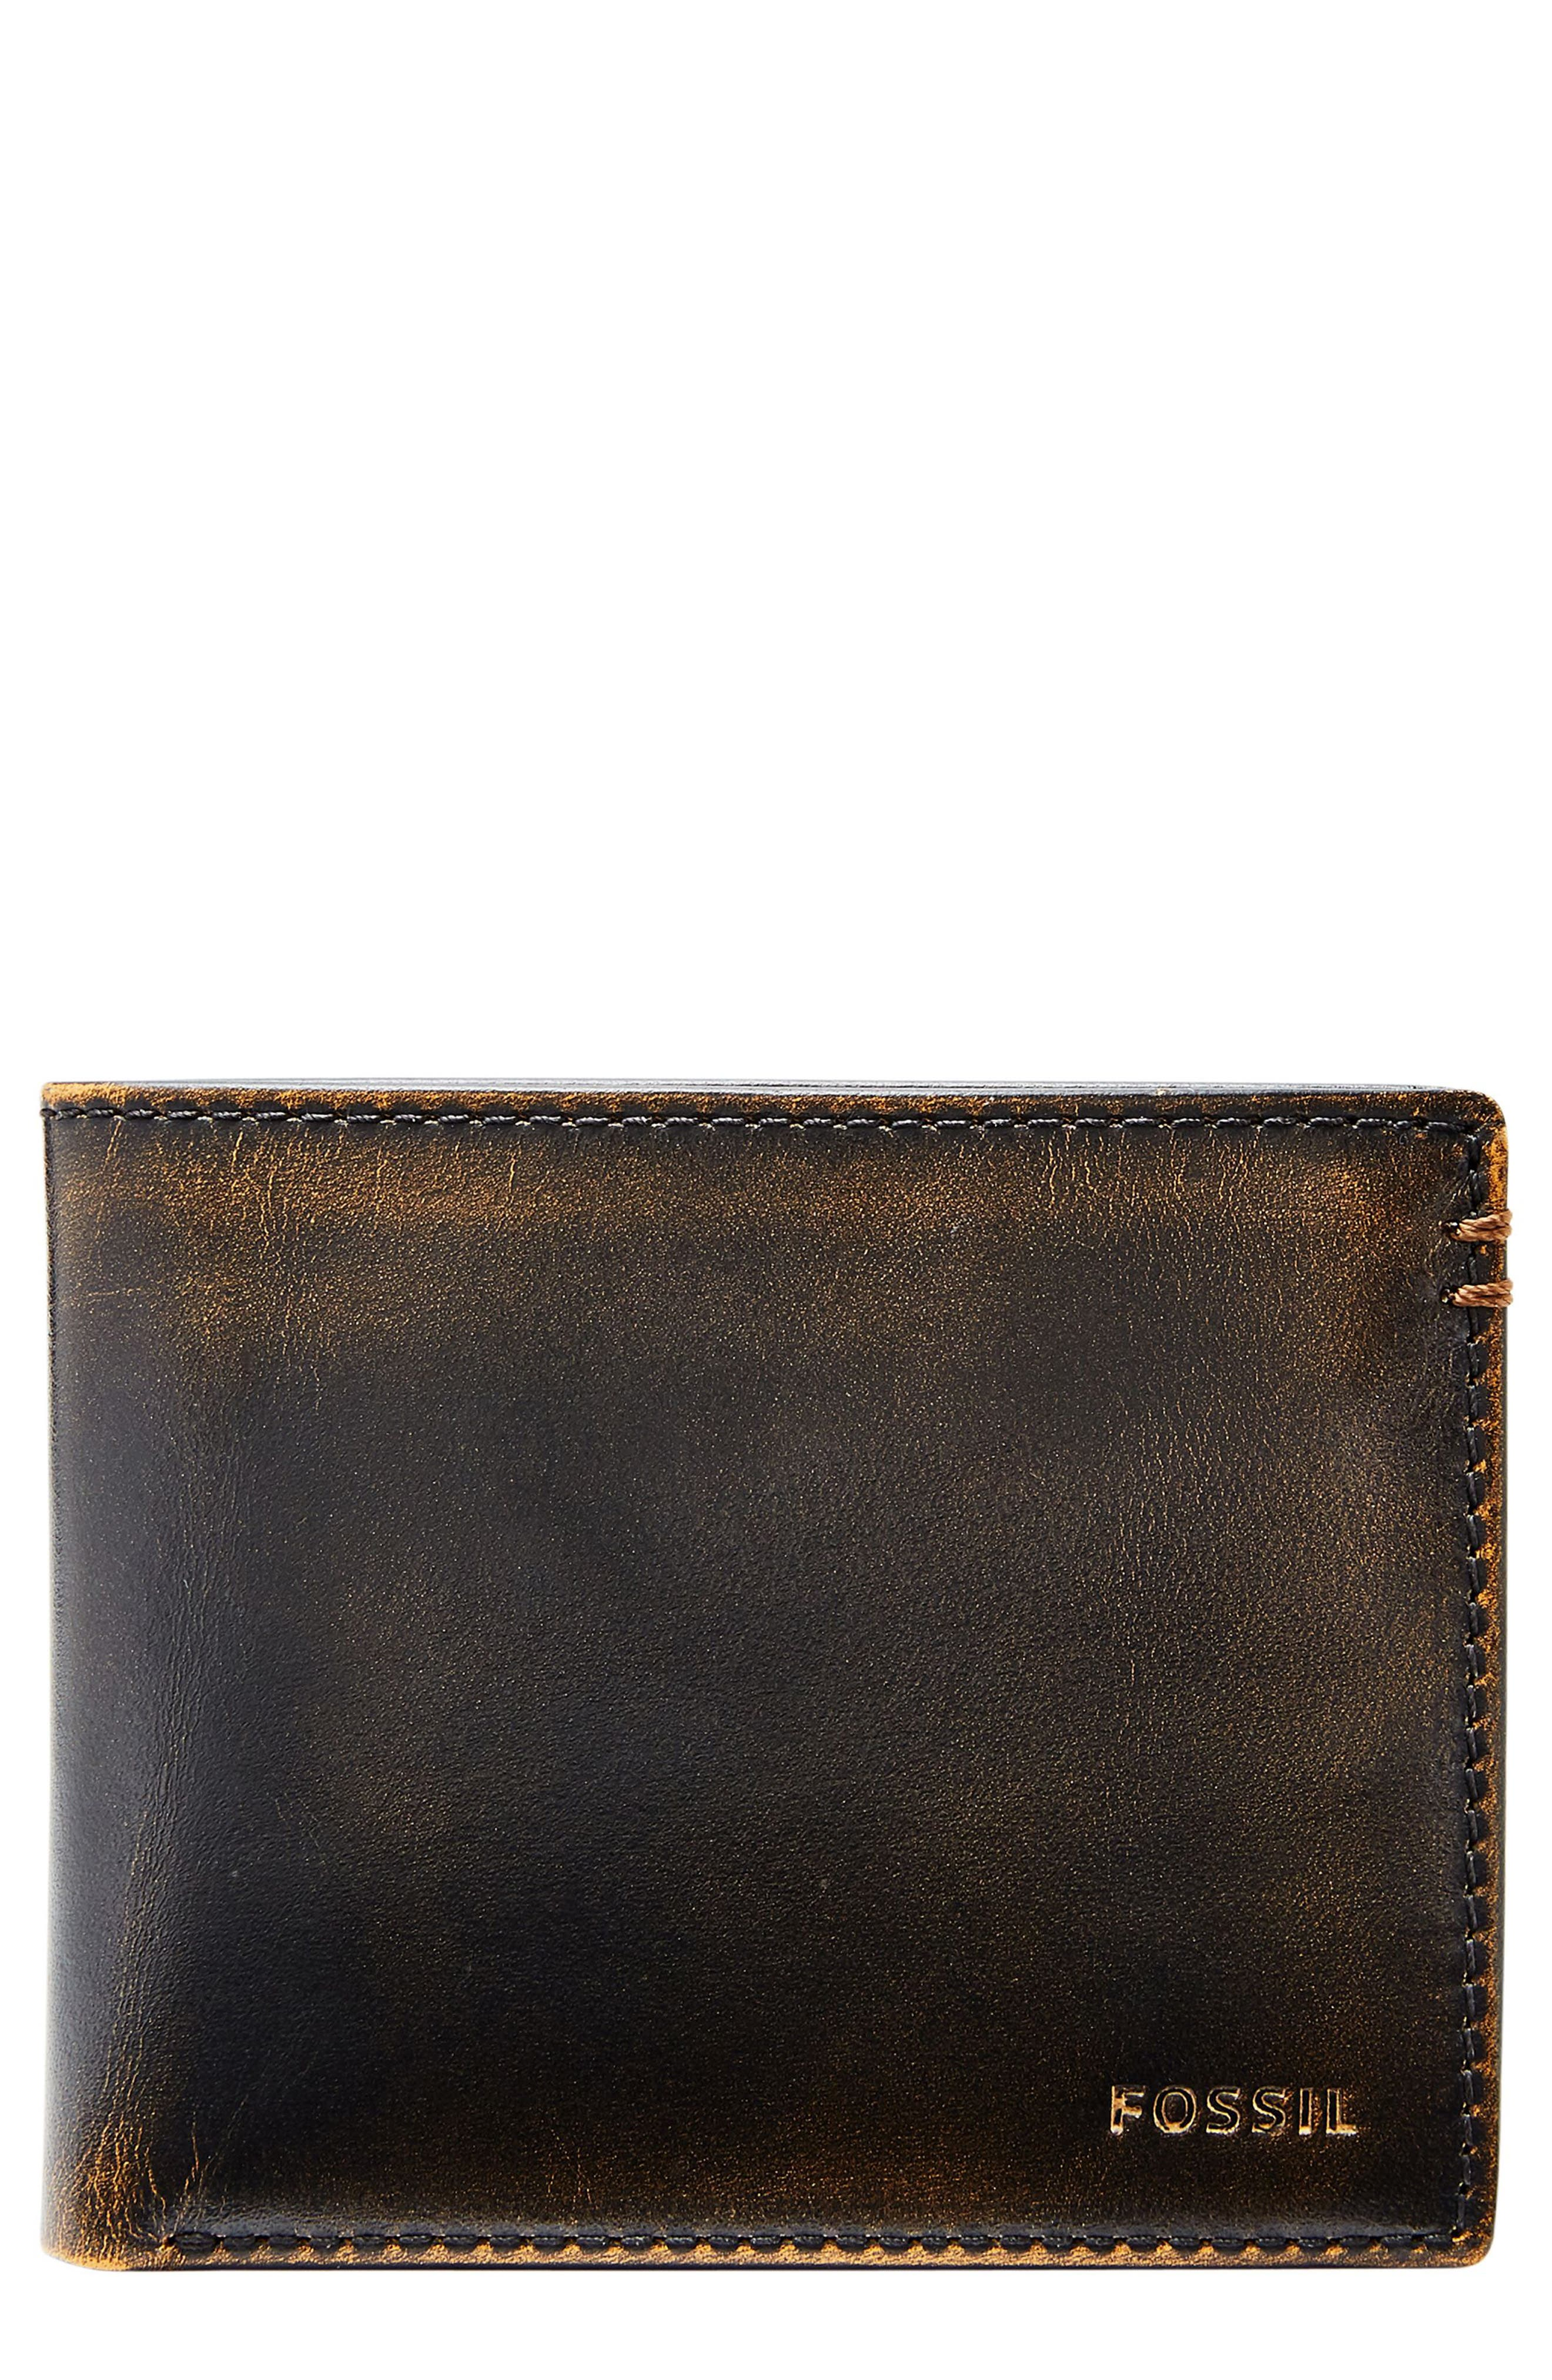 Wade Leather Wallet,                             Main thumbnail 1, color,                             Black